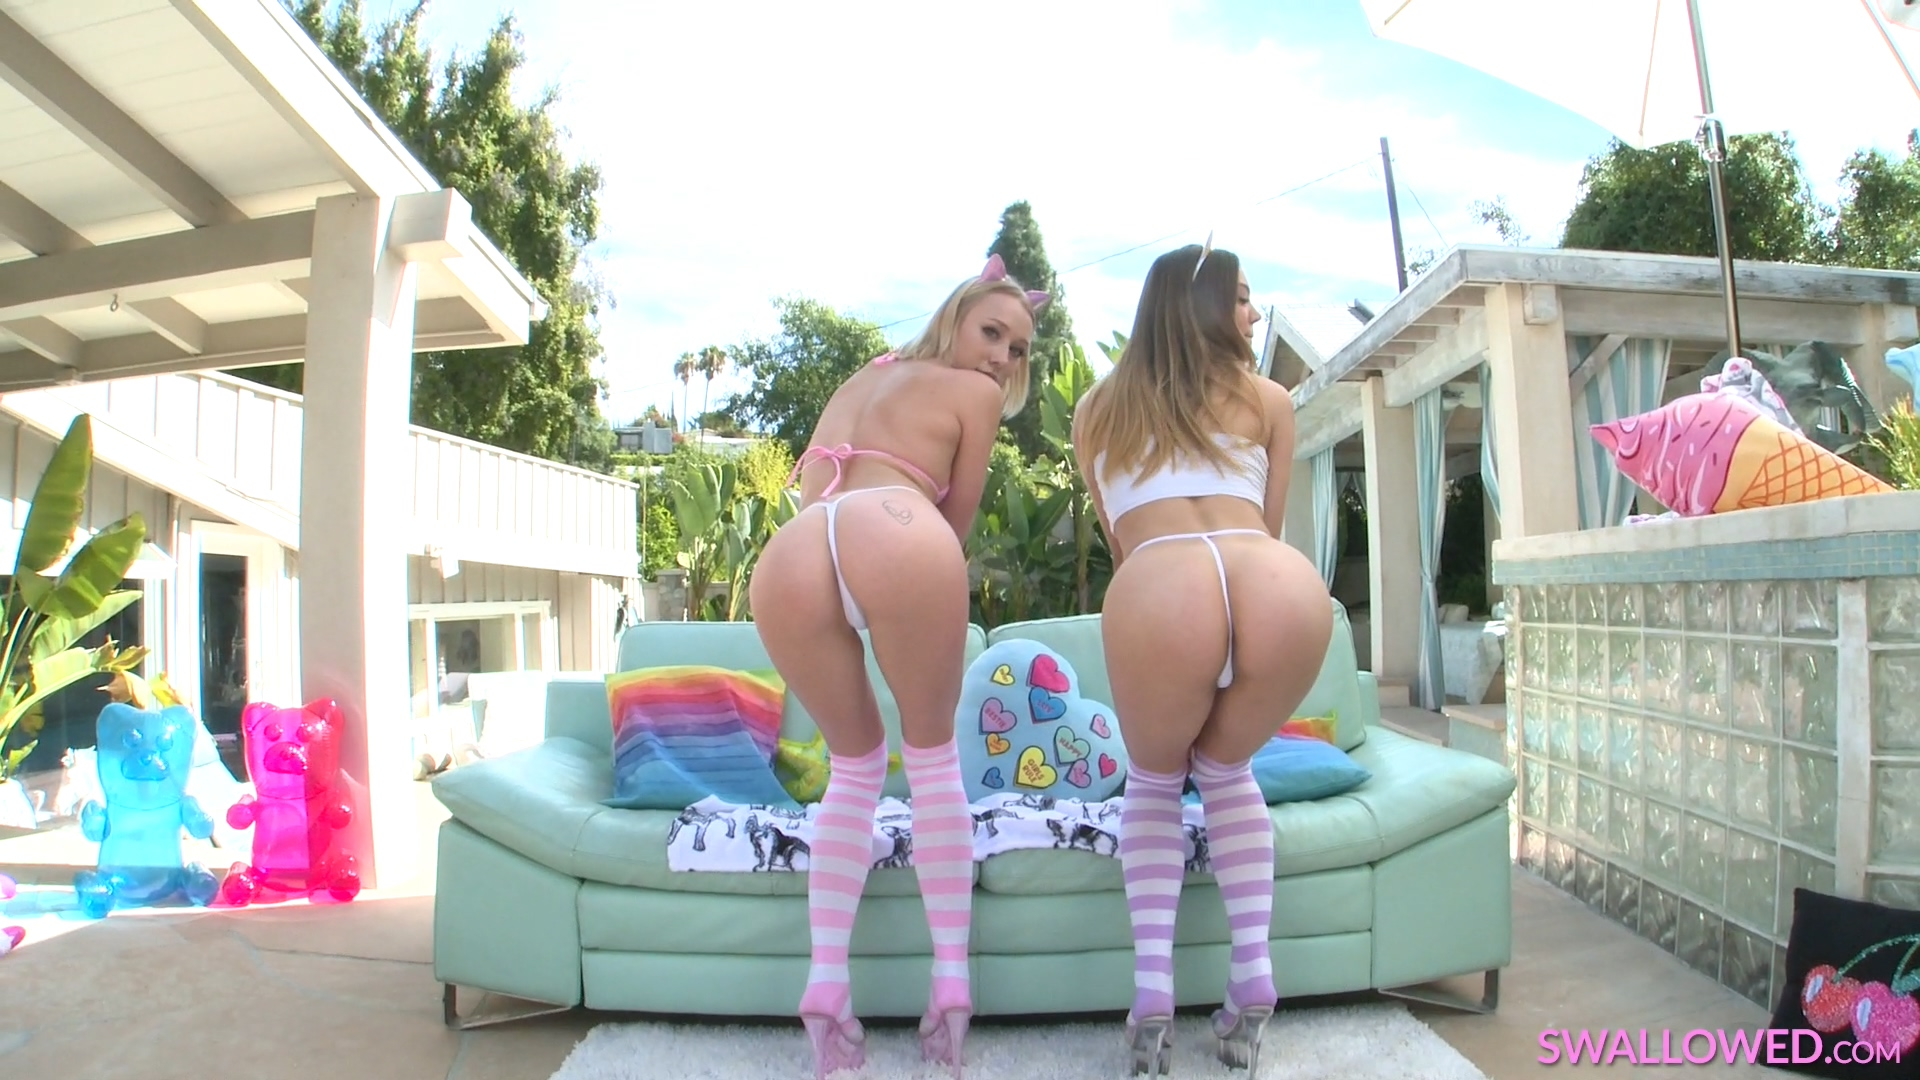 swallowed_19_10_31_athena_may_and_avery_cristy_mp4_20191107_151007_615.jpg